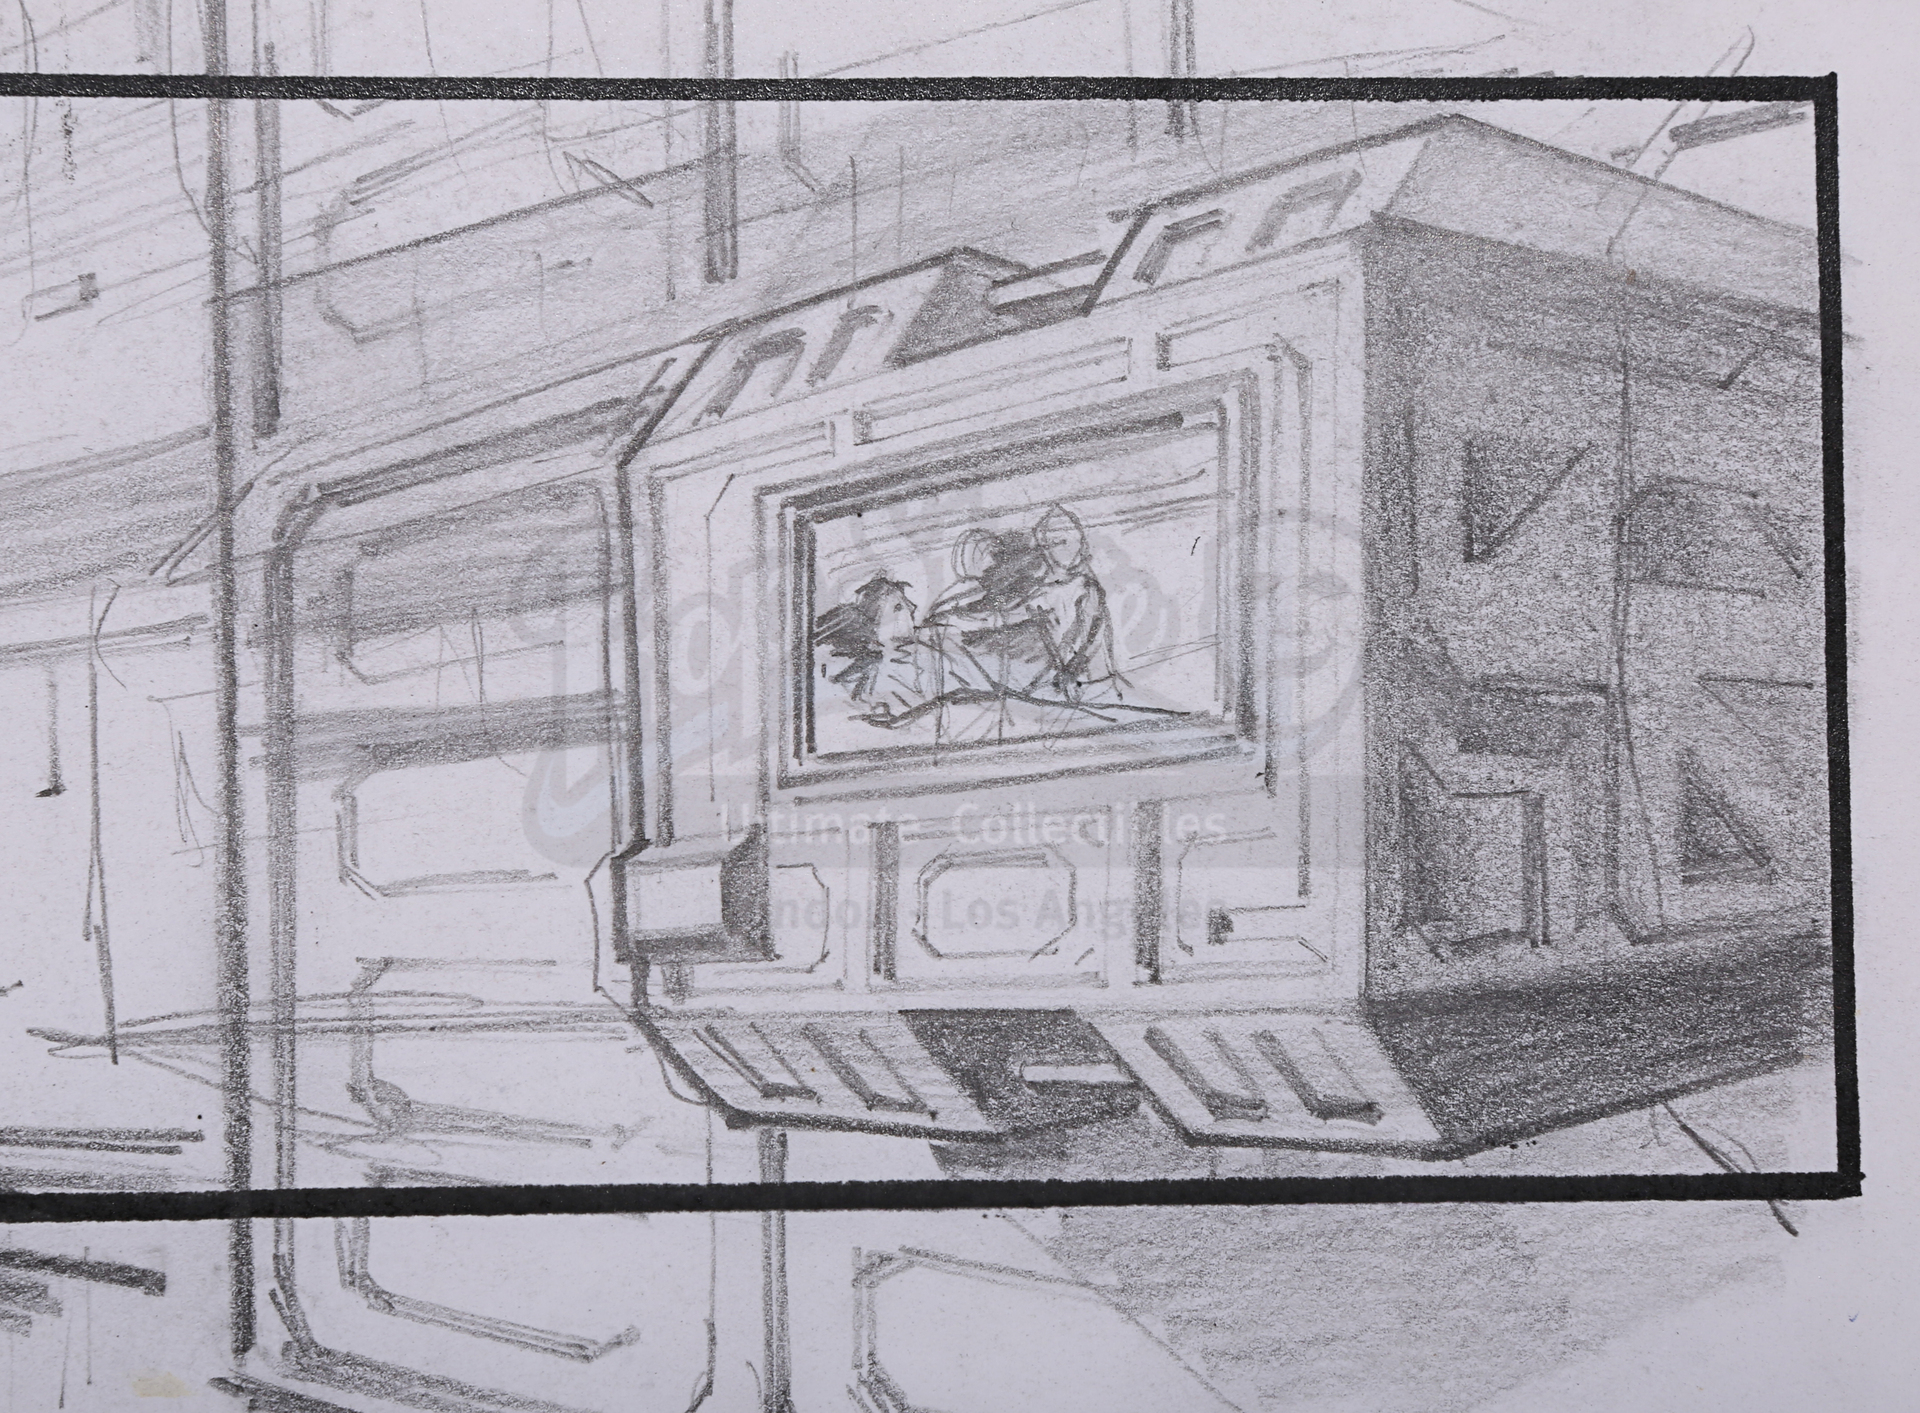 ALIENS (1986) - Two Pencil Storyboards Featuring Ripley (Sigourney Weaver) and Burke (Paul Reiser) - Image 5 of 6